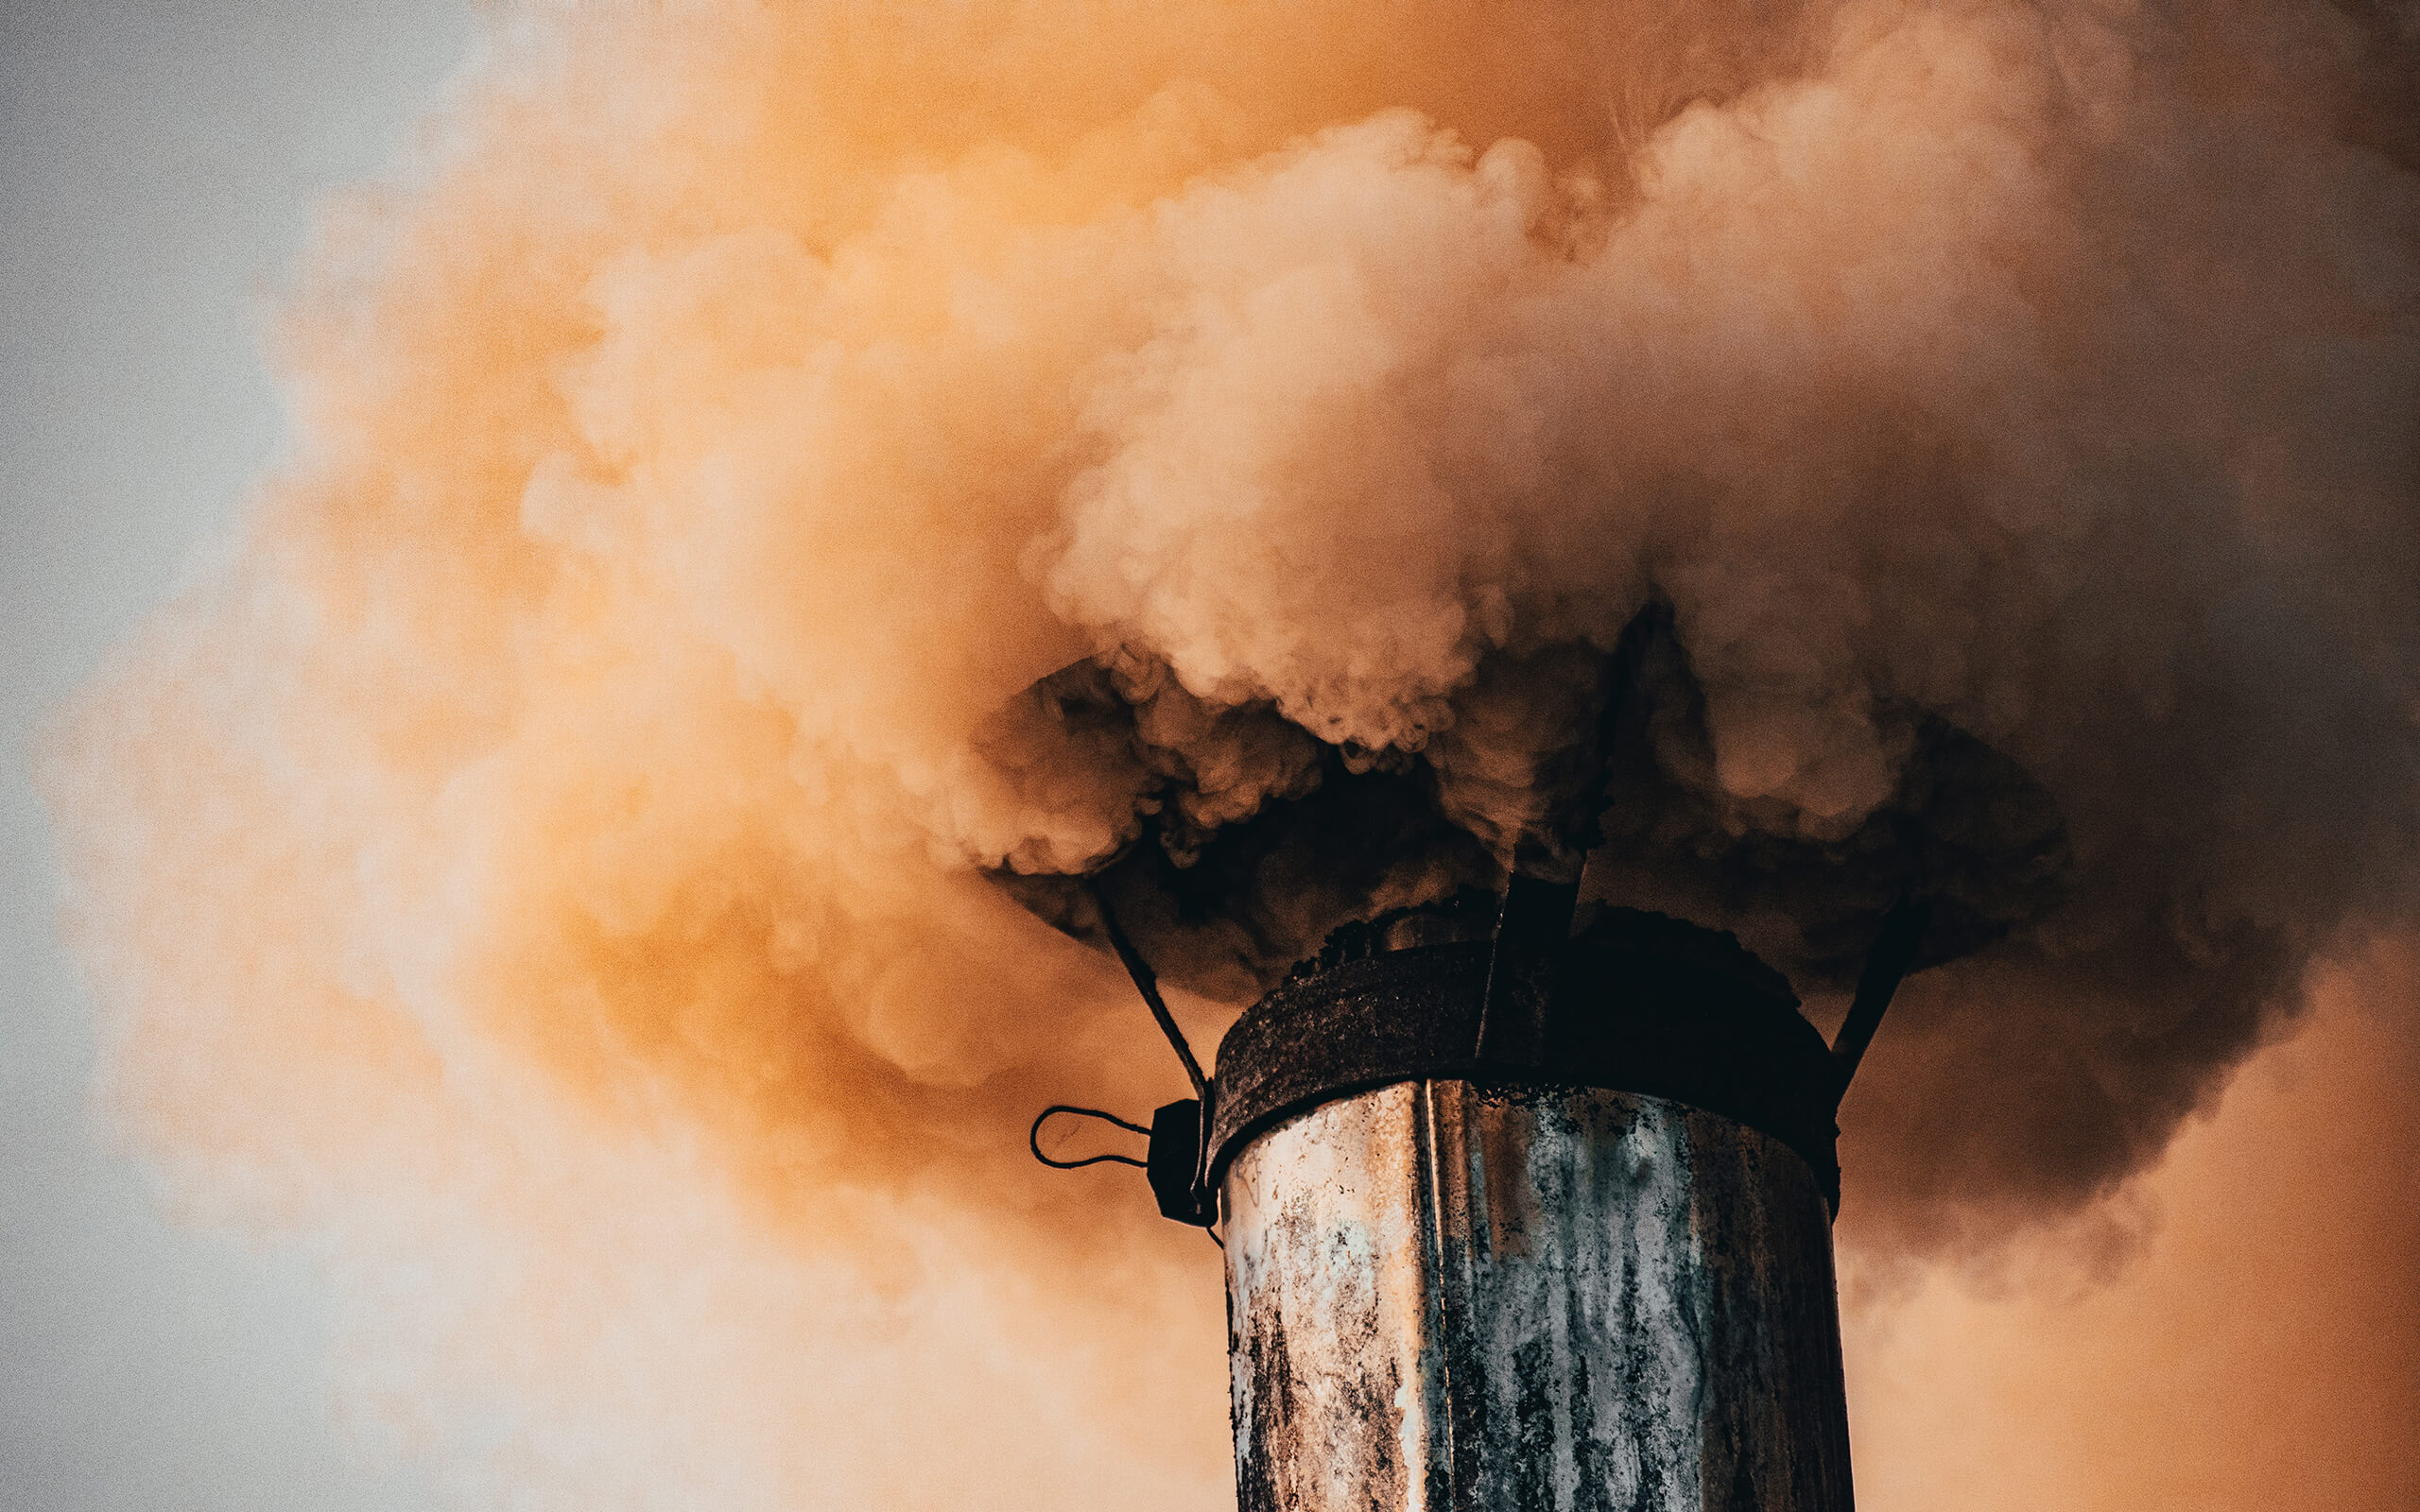 smoke billowing from an industrial chimney